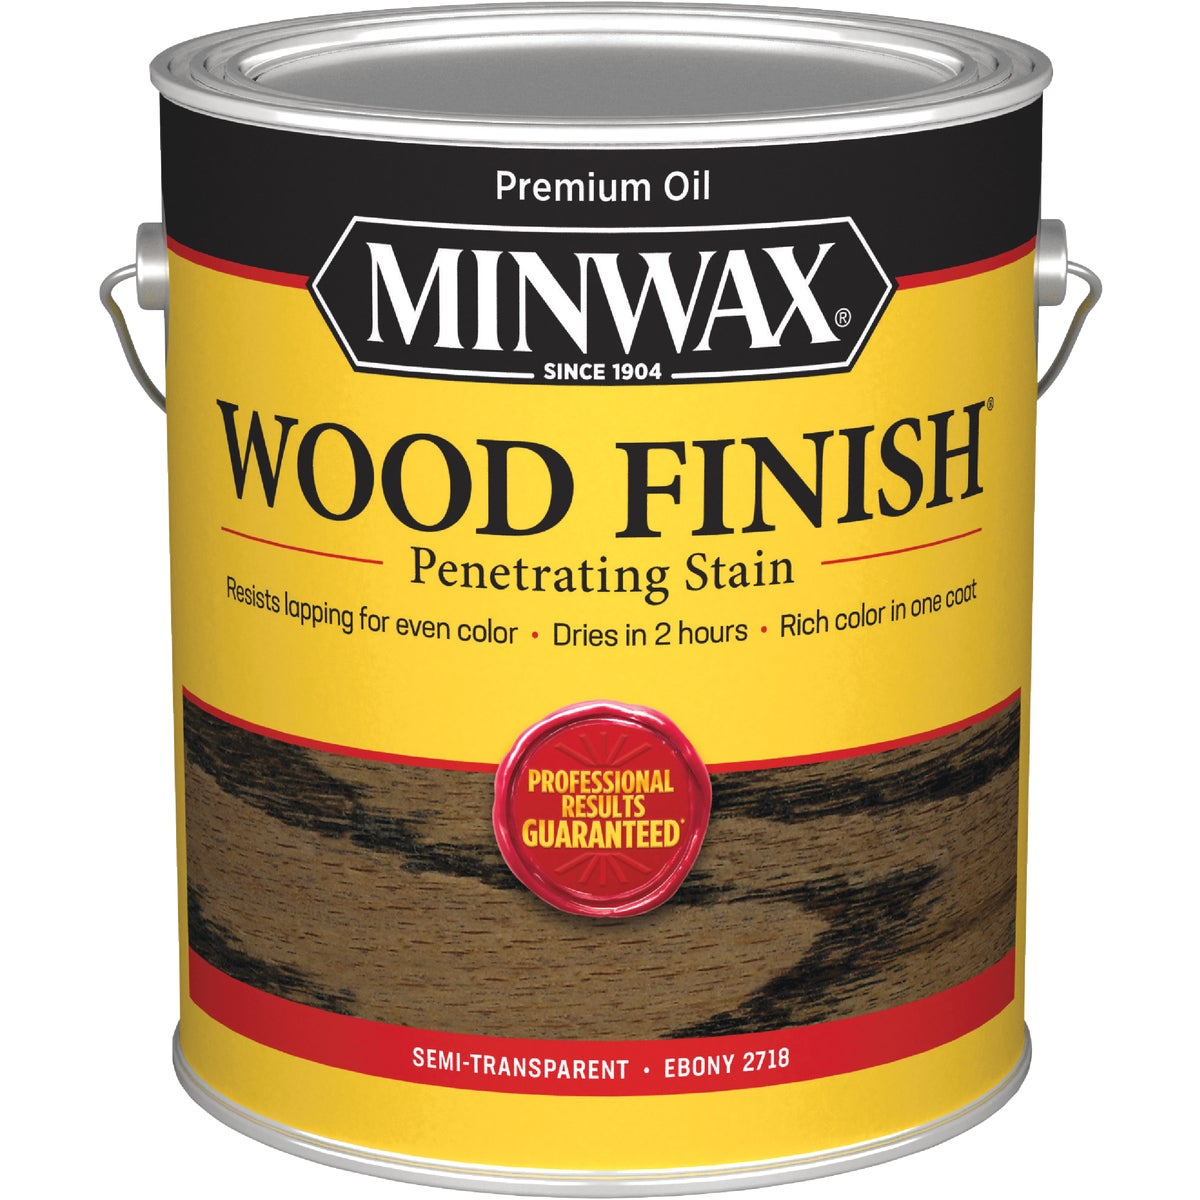 EBONY WOOD FINISH STAIN - 710130000 by Minwax Company